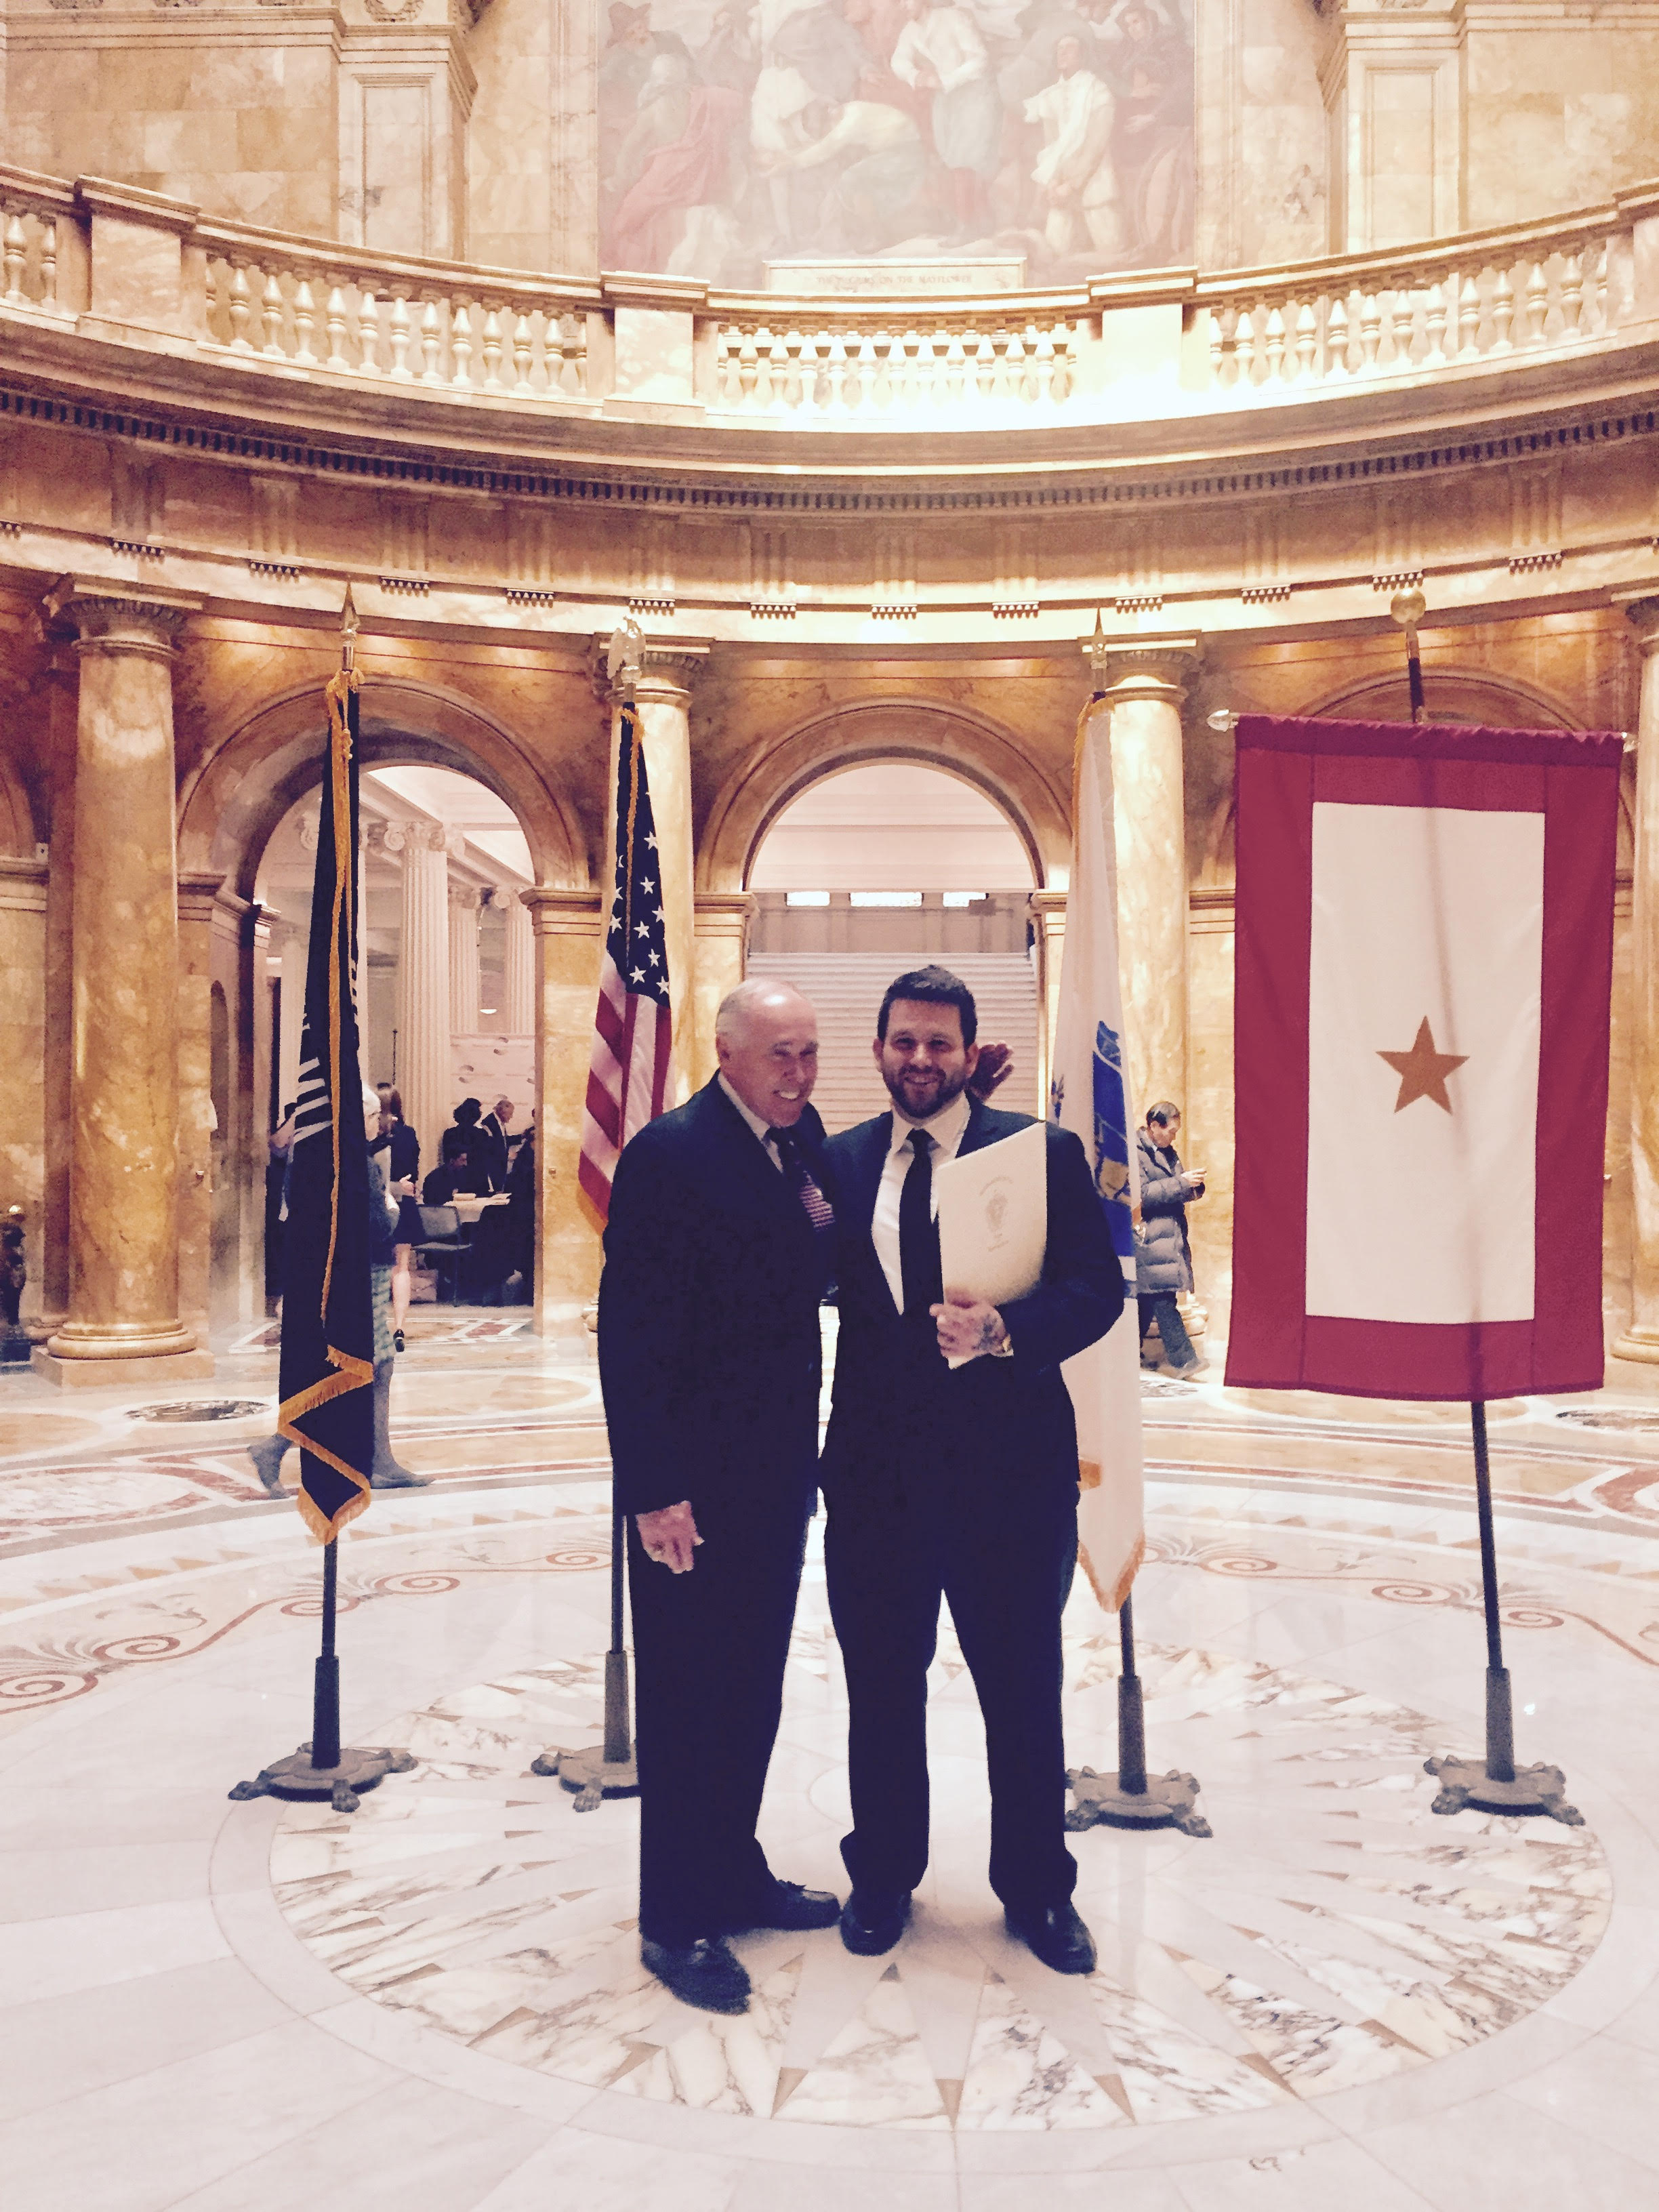 Anton and his father in the Hall of Flags at the Massachusetts State House March 30th 2017.